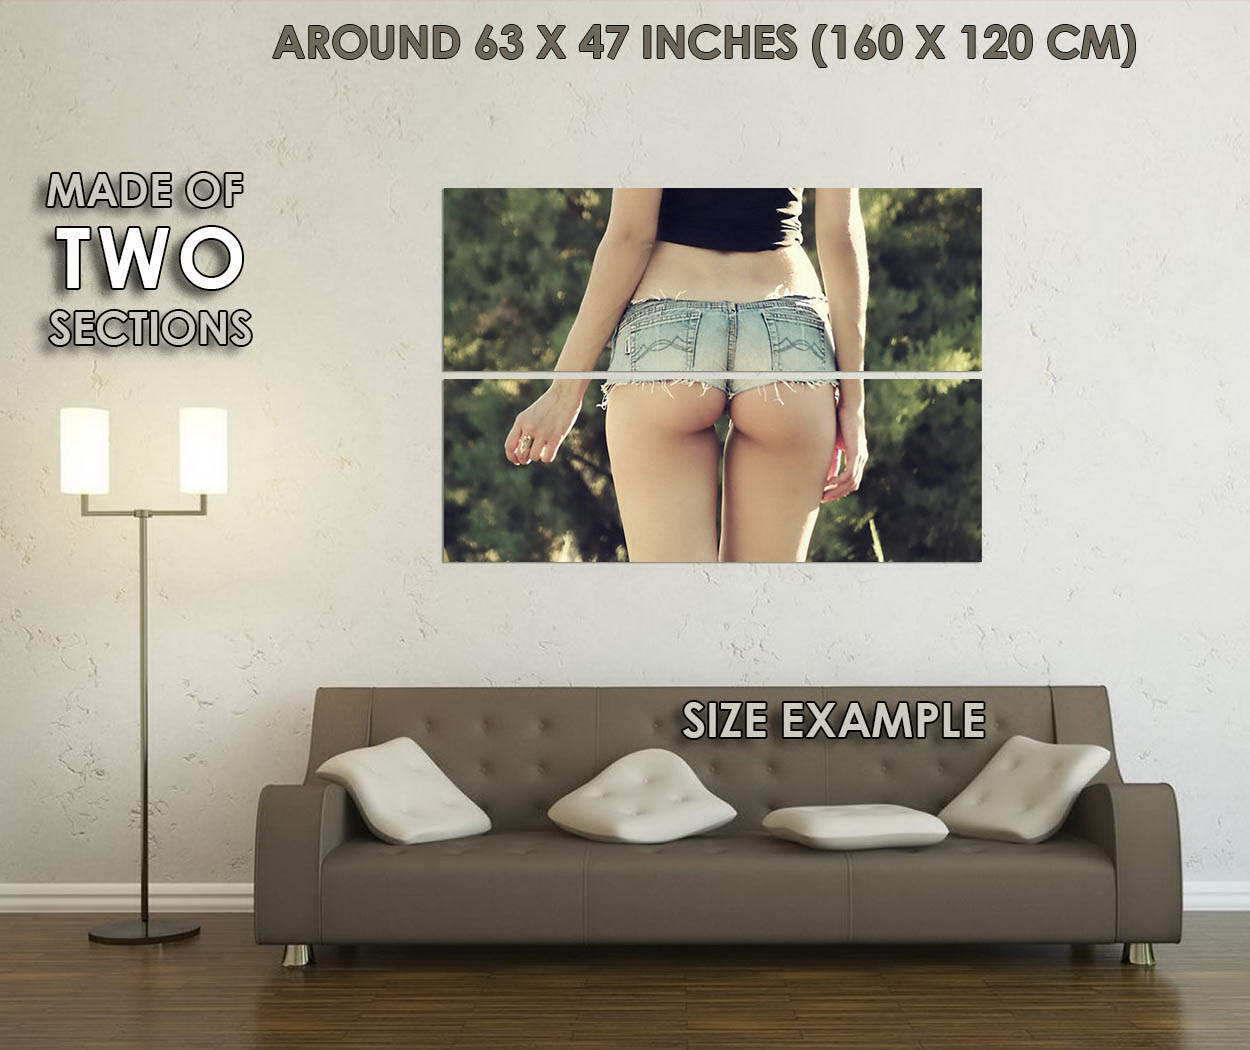 10358-Sexy-Girl-Butt-Art-Lady-with-Hot-Pants-LAMINATED-POSTER-CA thumbnail 6